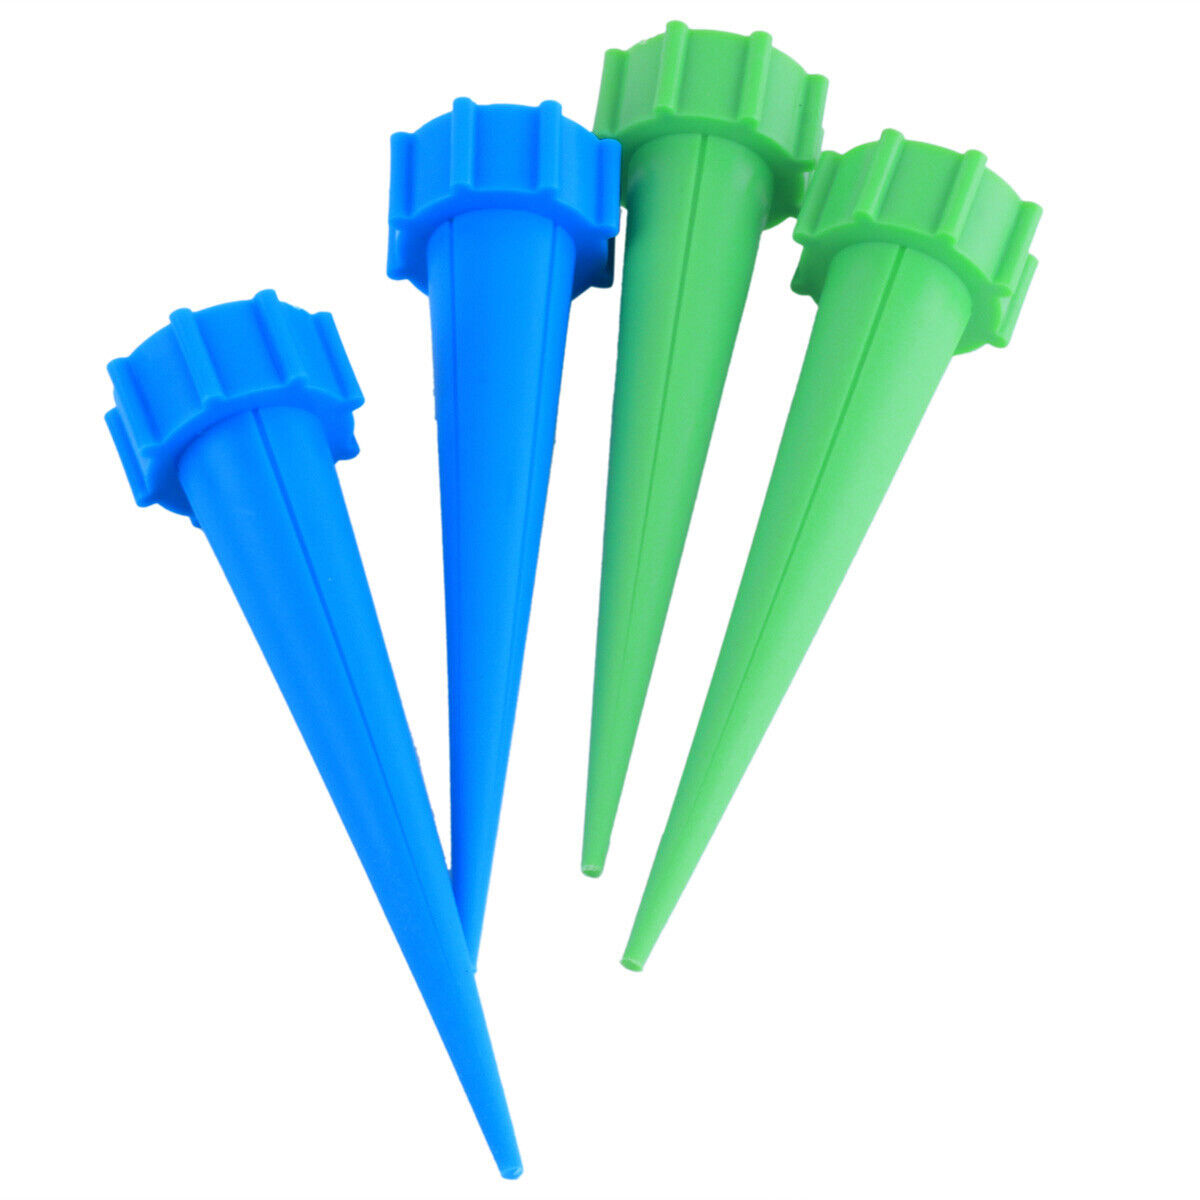 UK 4x Cone Automatic Watering Spikes Stake Water Feeder Irrigation Plant Garden